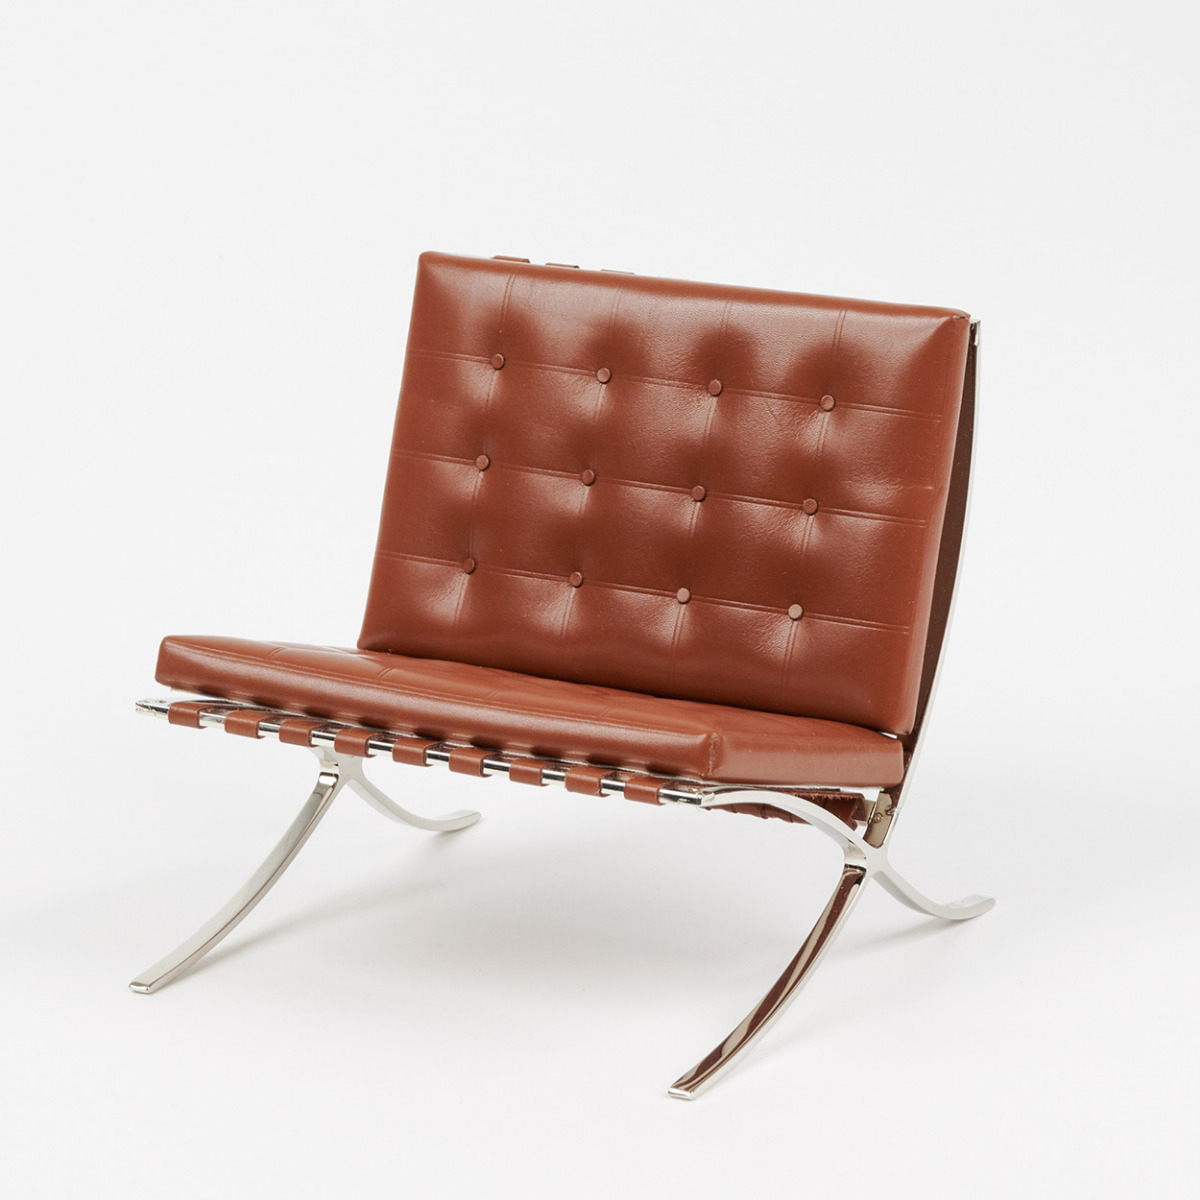 Miniature Ludwig Mies van der Rohe's MR 90 Barcelona chair, 1929